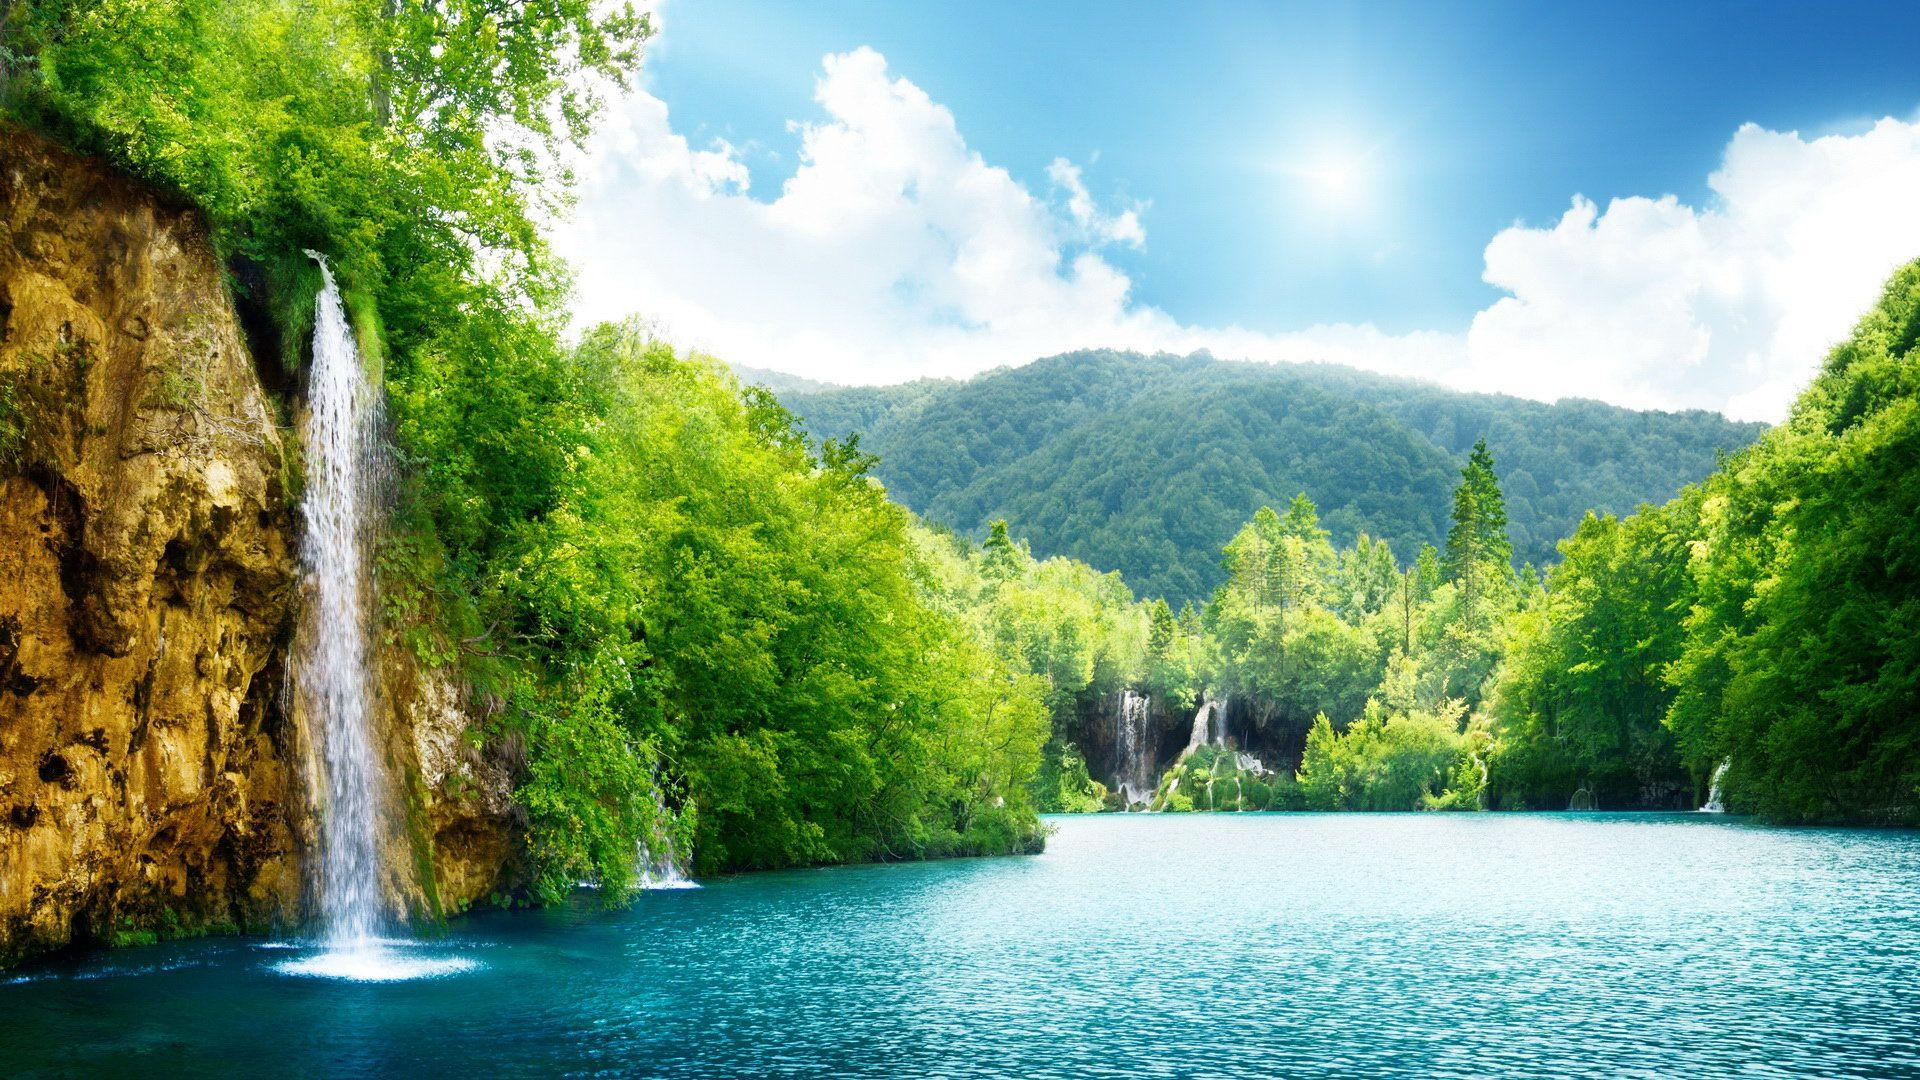 Hd Scenery Wallpapers For Pc Wallpaper Cave